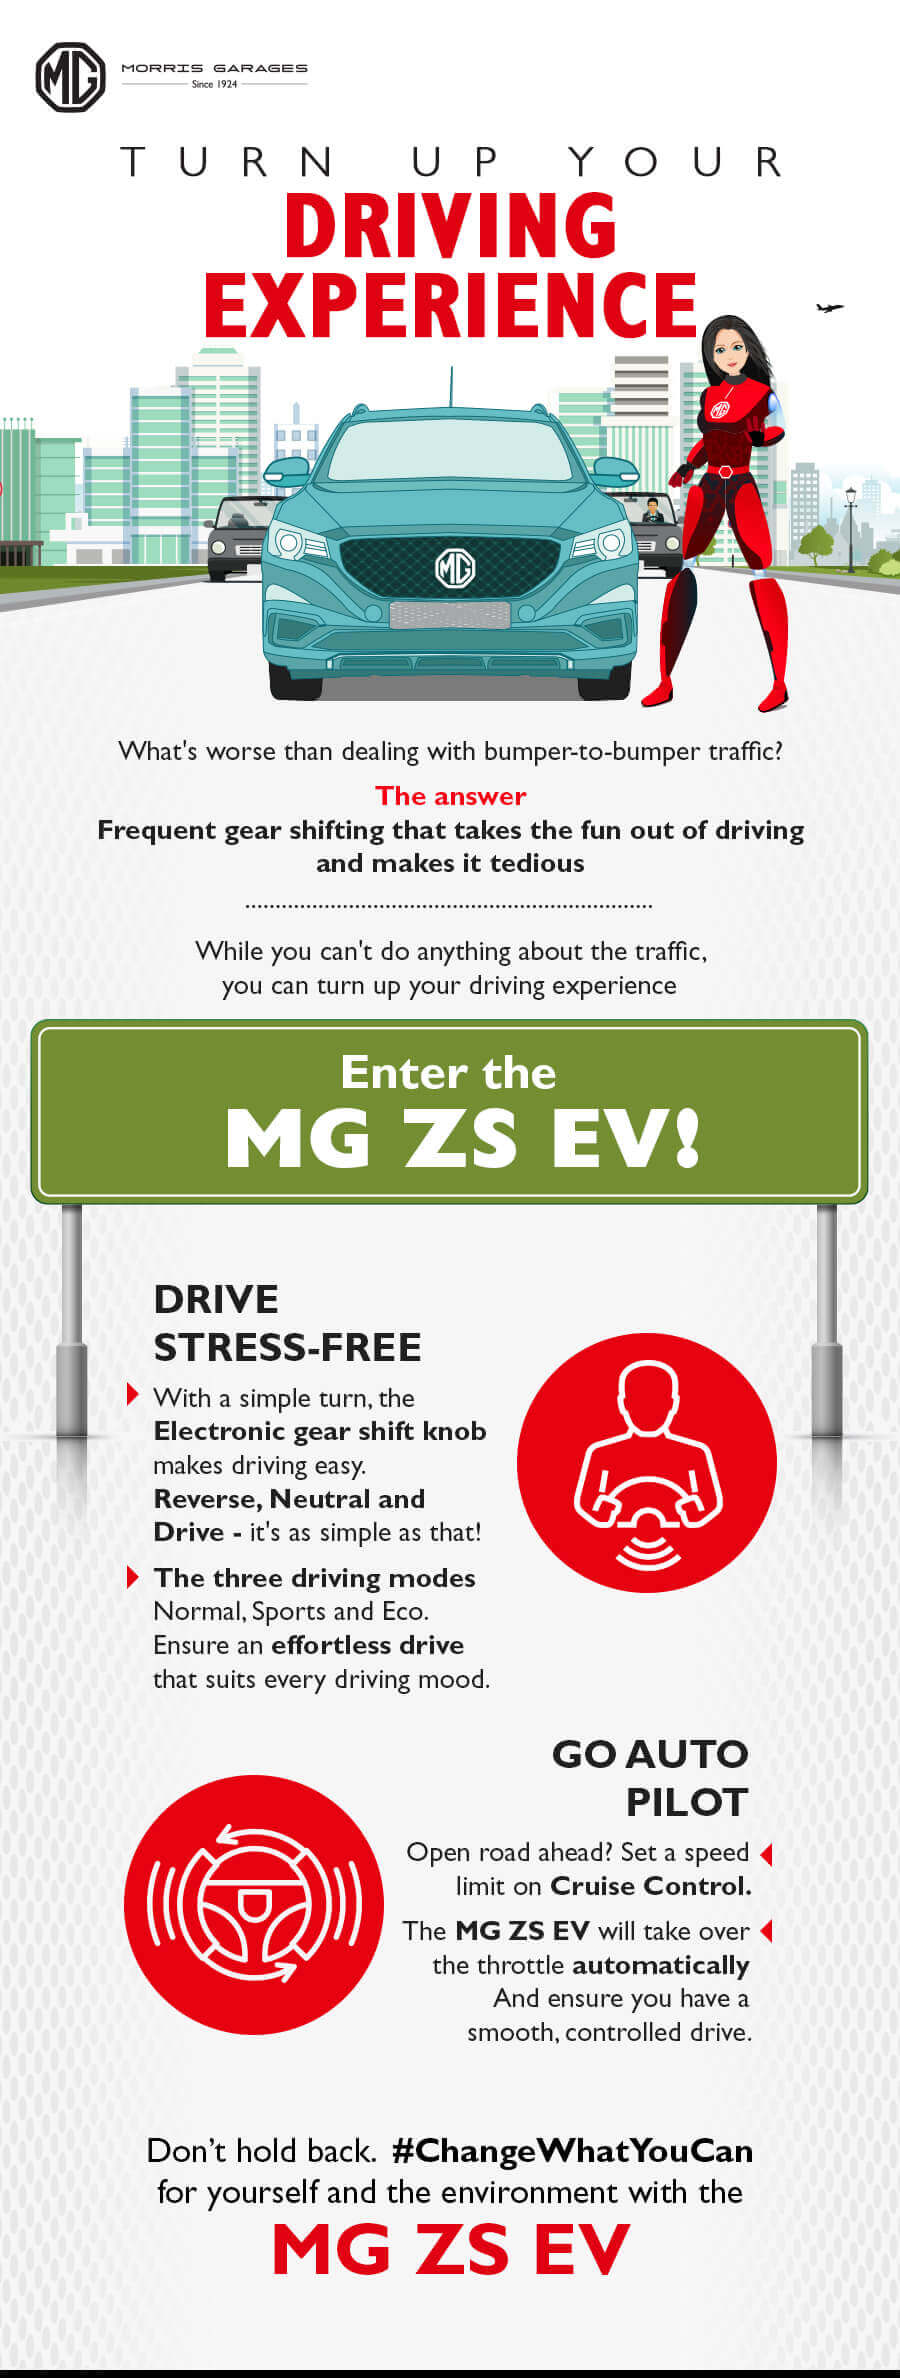 Turn up your driving experience